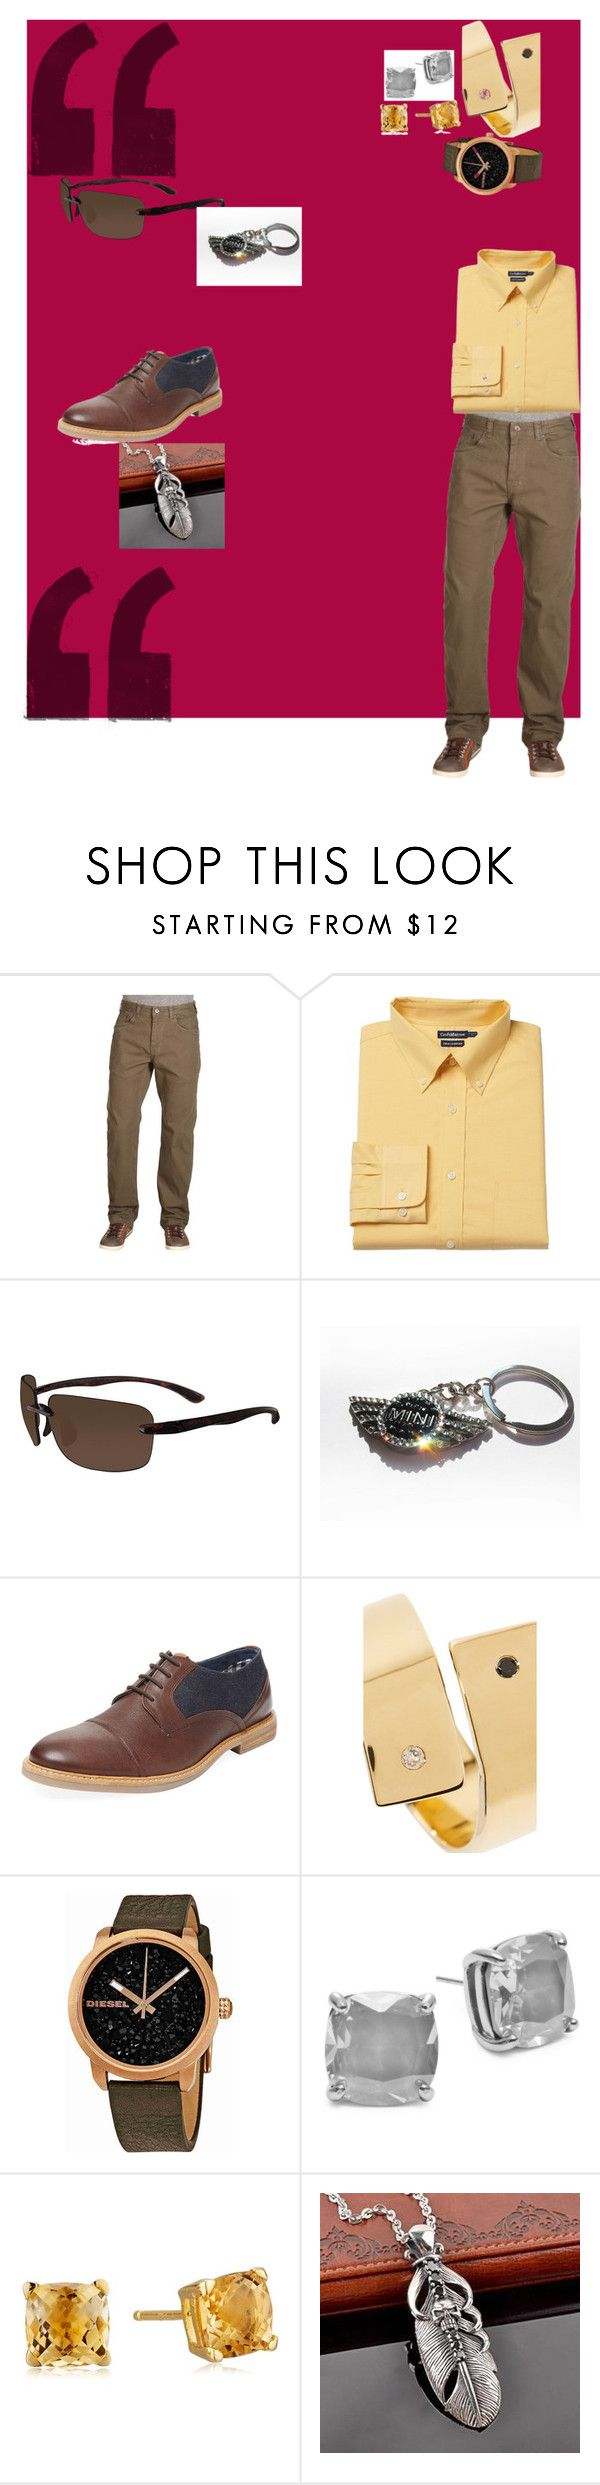 """Claudia's Closet LLC's, Angrogony"" by claudiasclosetllc on Polyvore featuring prAna, Croft & Barrow, Visualites, Ben Sherman, Elizabeth and James, Diesel, Kate Spade and Trend Cool"